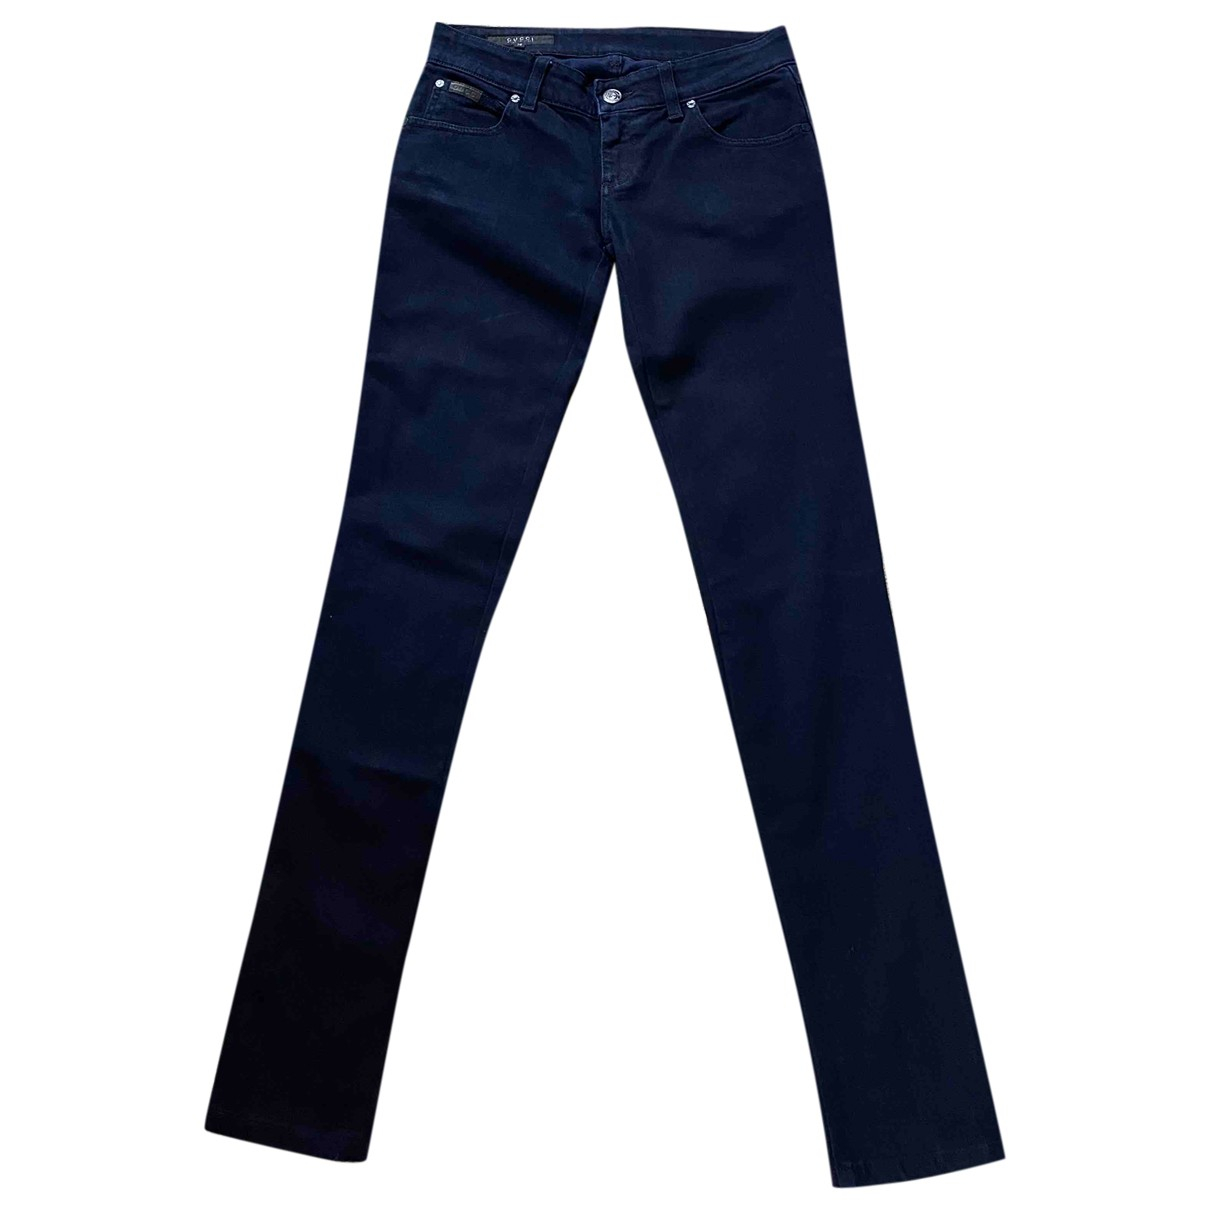 Gucci \N Navy Cotton - elasthane Jeans for Women 34 FR